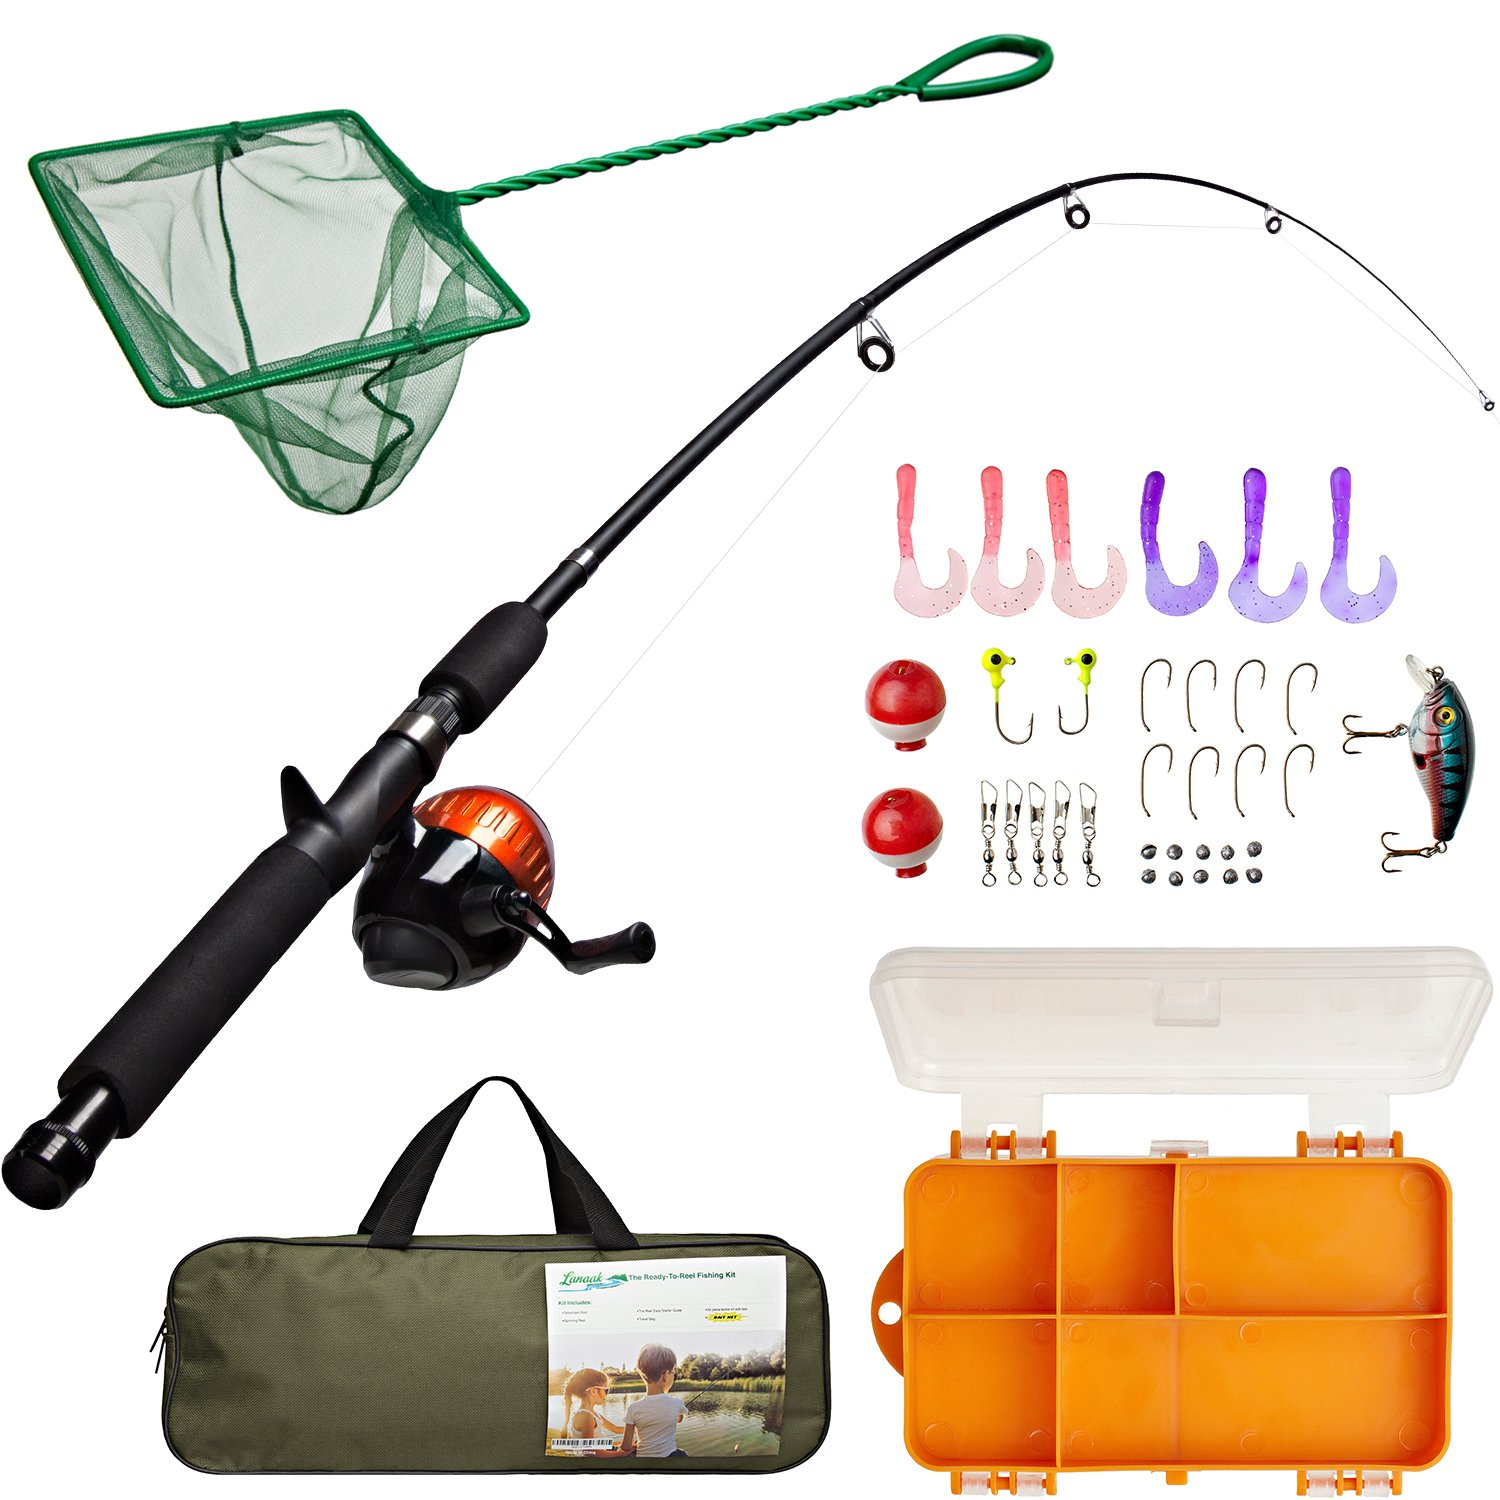 Lanaak Kids Fishing Pole and Tackle Box - with Net, Travel Bag, Spincast Reel and Beginner's Guide | Collapsible Fishing Rod and Reel Combos Kit for Boys, Girls, and Adults by Lanaak